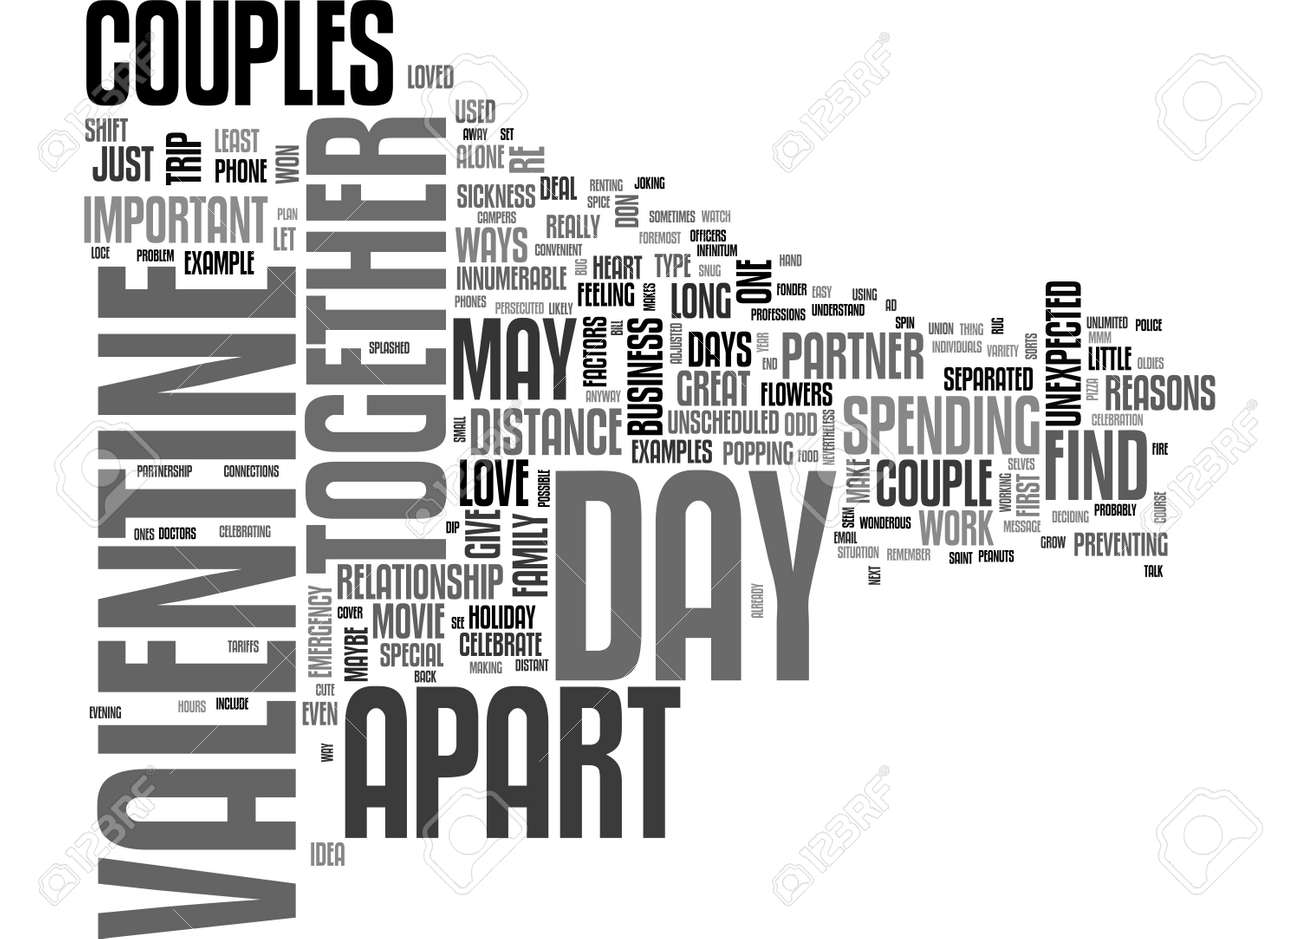 APACHE WEBSERVER A QUICK TUTORIAL FOR NEW ADMINS TEXT WORD CLOUD